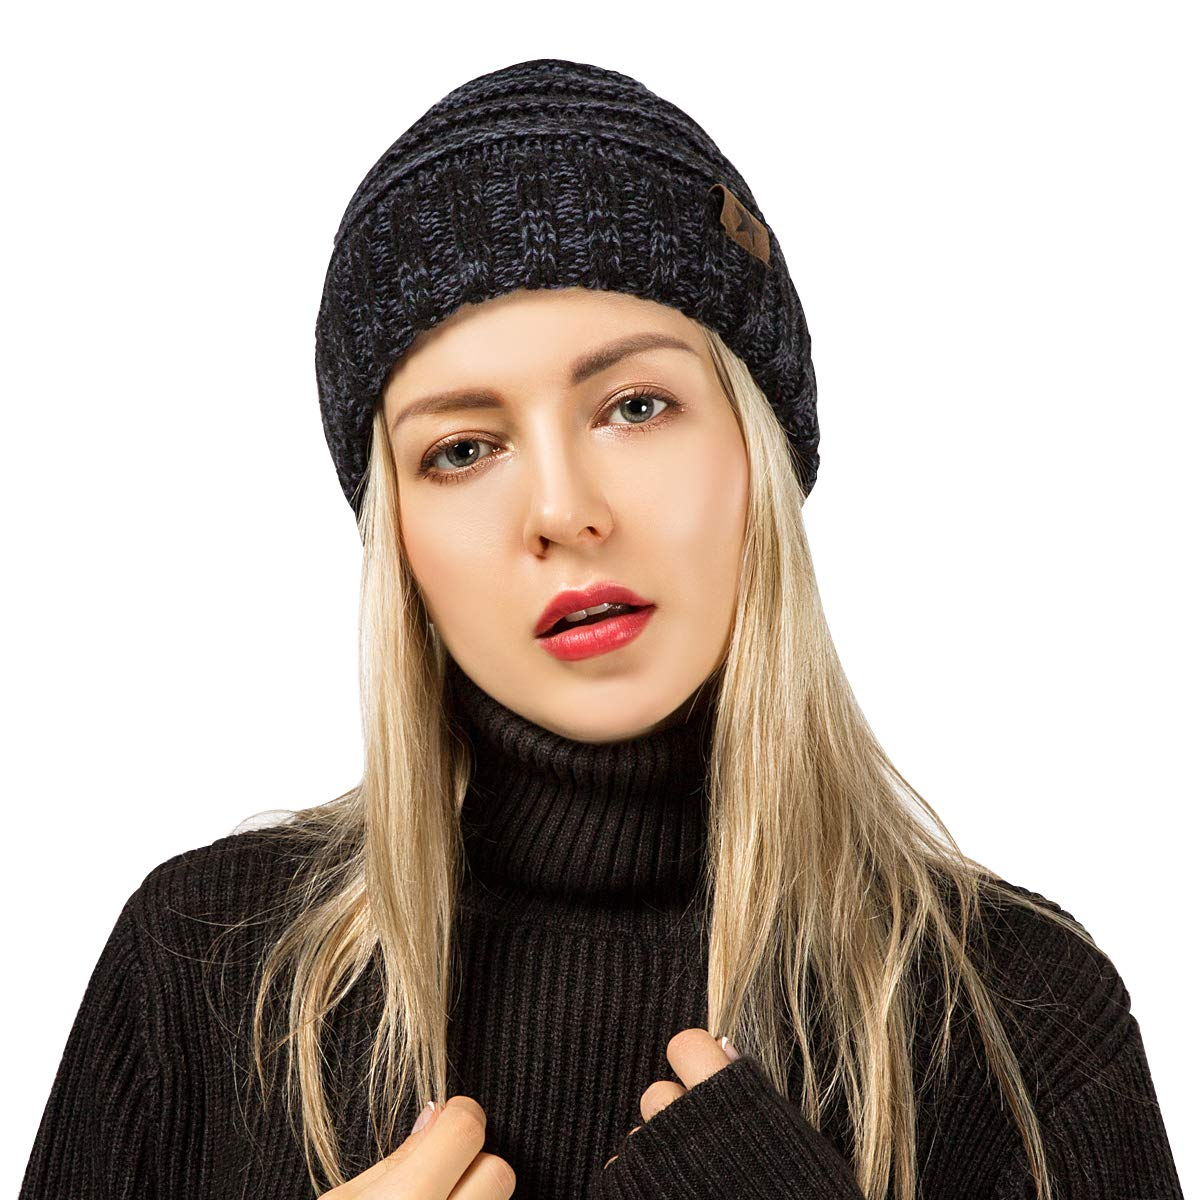 ADUO Unisex Warm Oversized Soft Beanie Cap Winter Cable Knit Thick Slouchy Beanie Skully Hats for Women Men (Black)